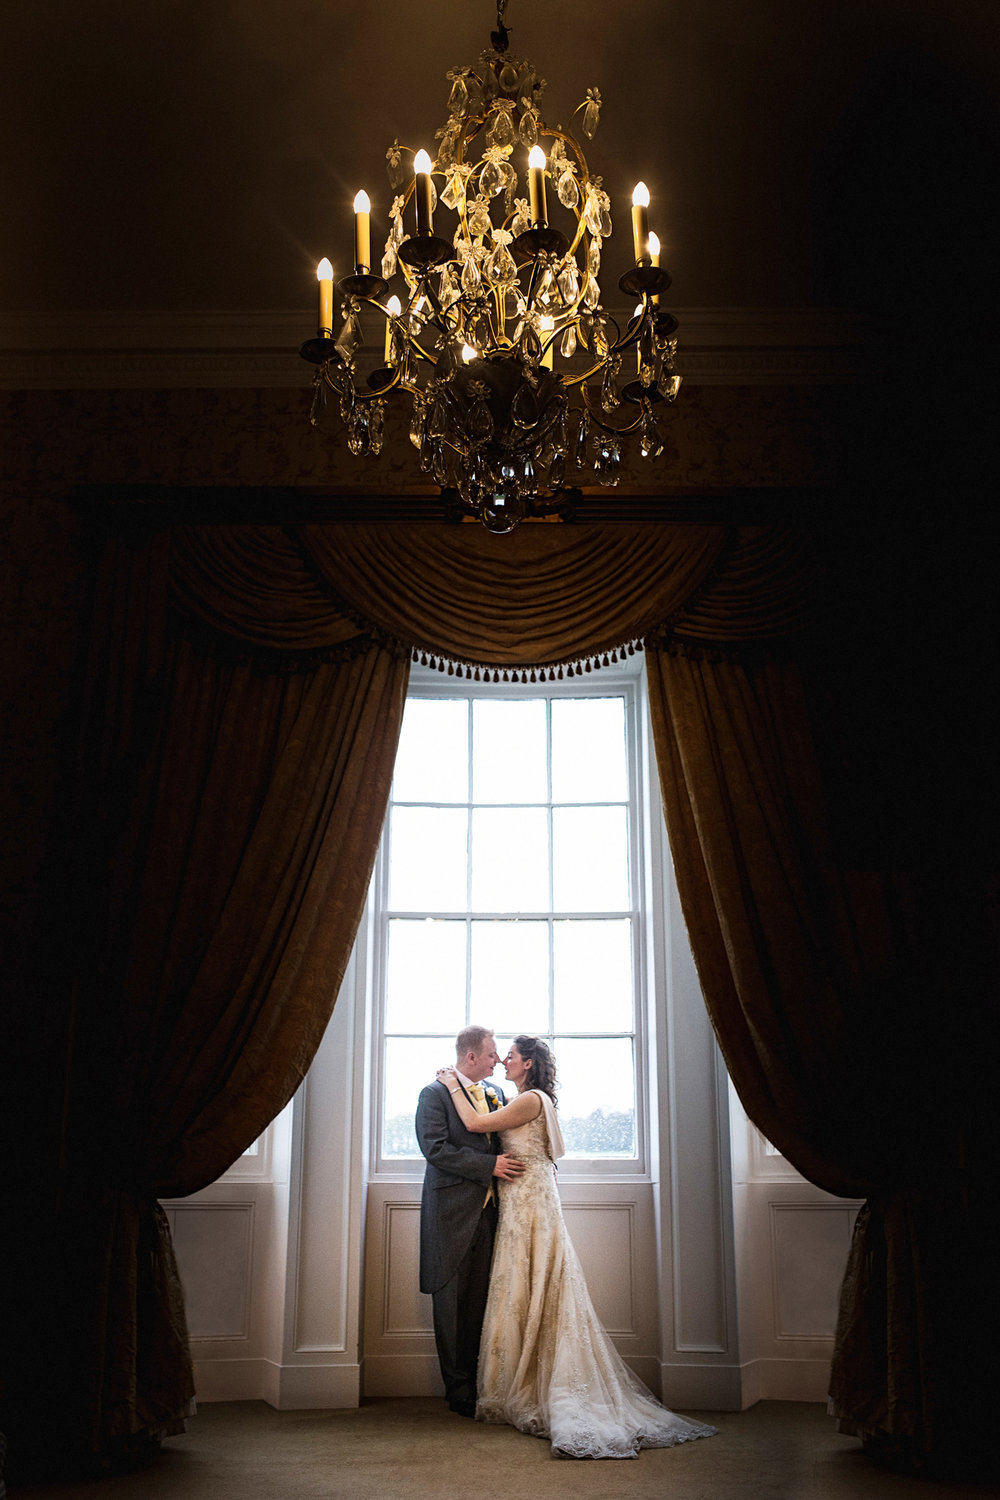 wynyard hall wedding photographer duncan mccall-1039.jpg